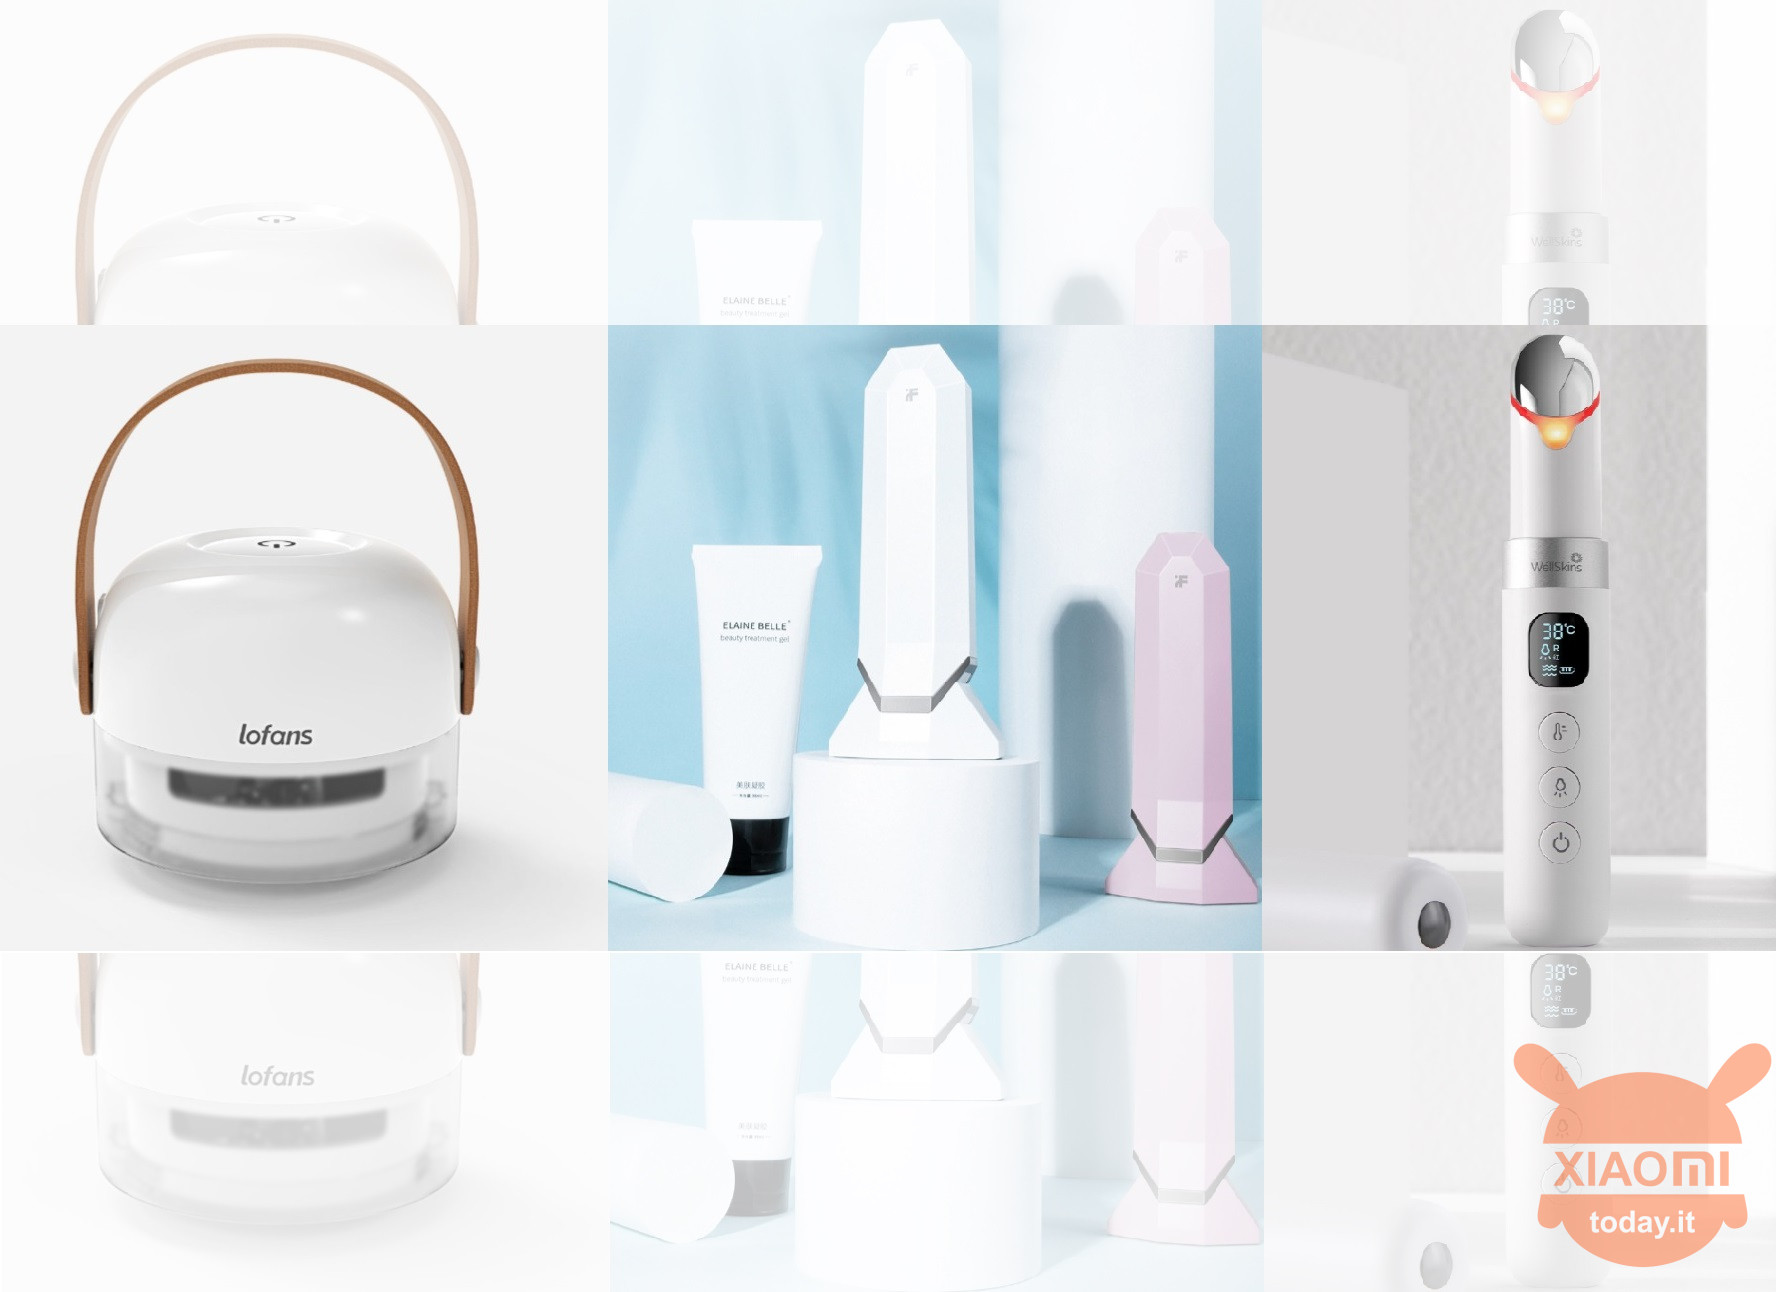 Three new Xiaomi gadgets for crowdfunding beauty